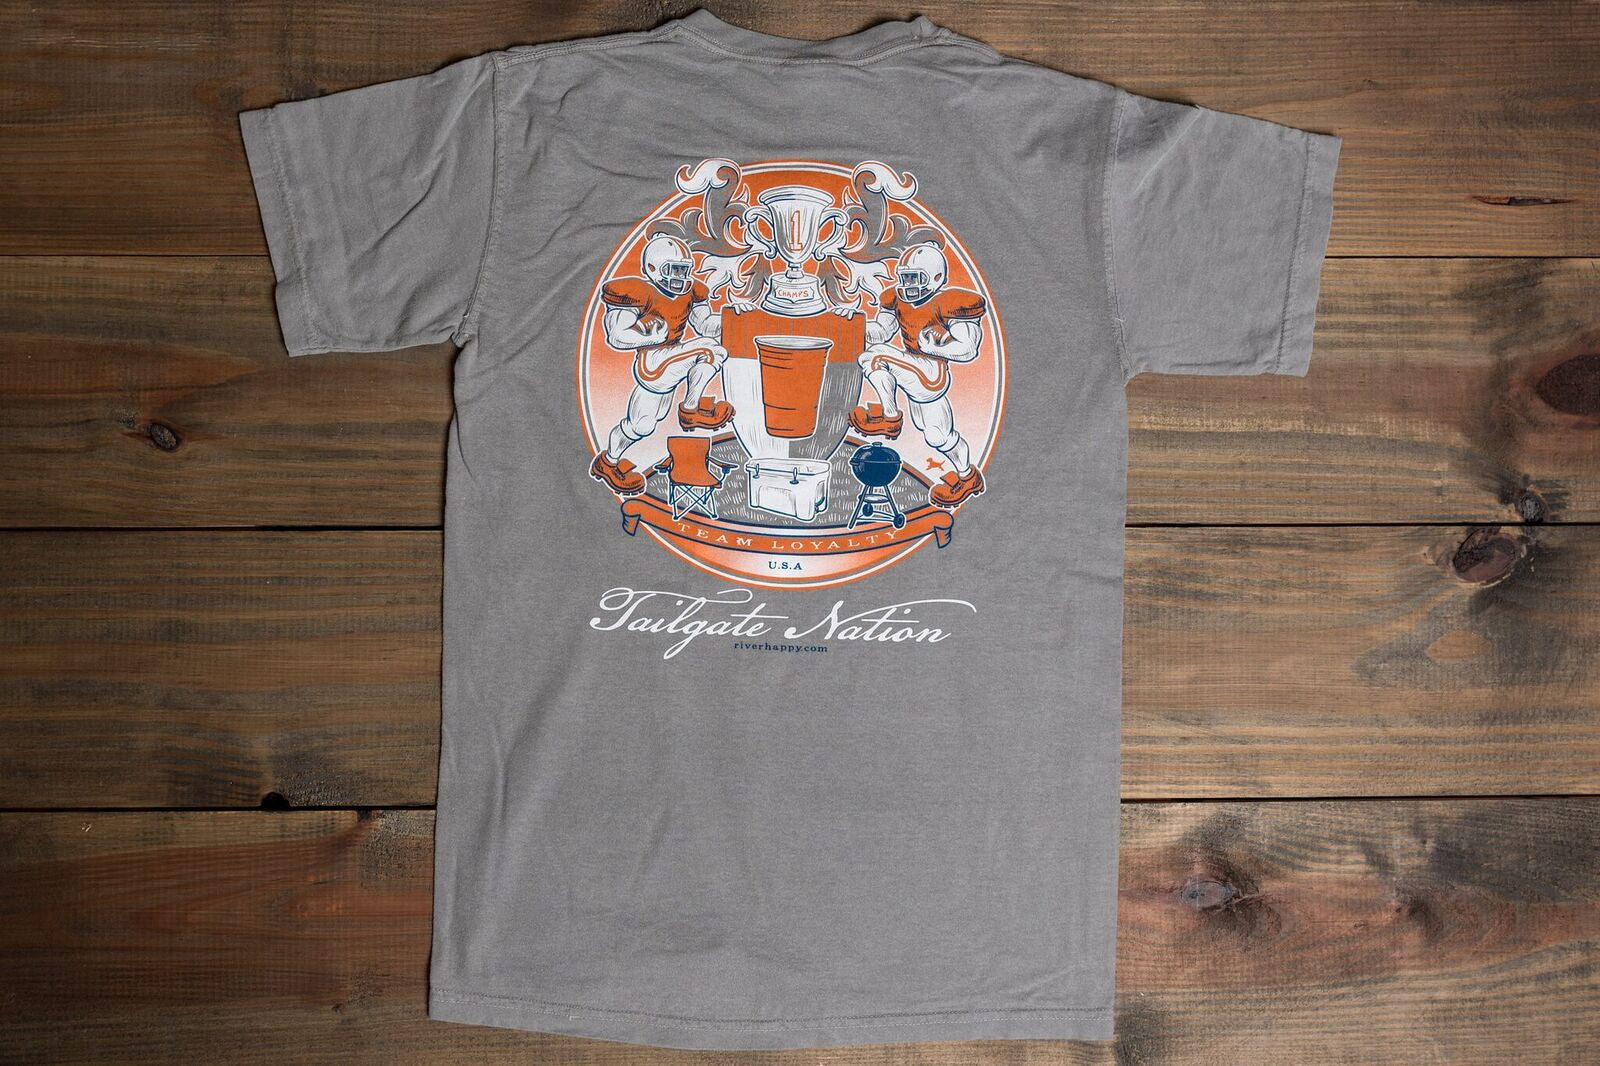 Southern Seal Tailgate Nation Tee